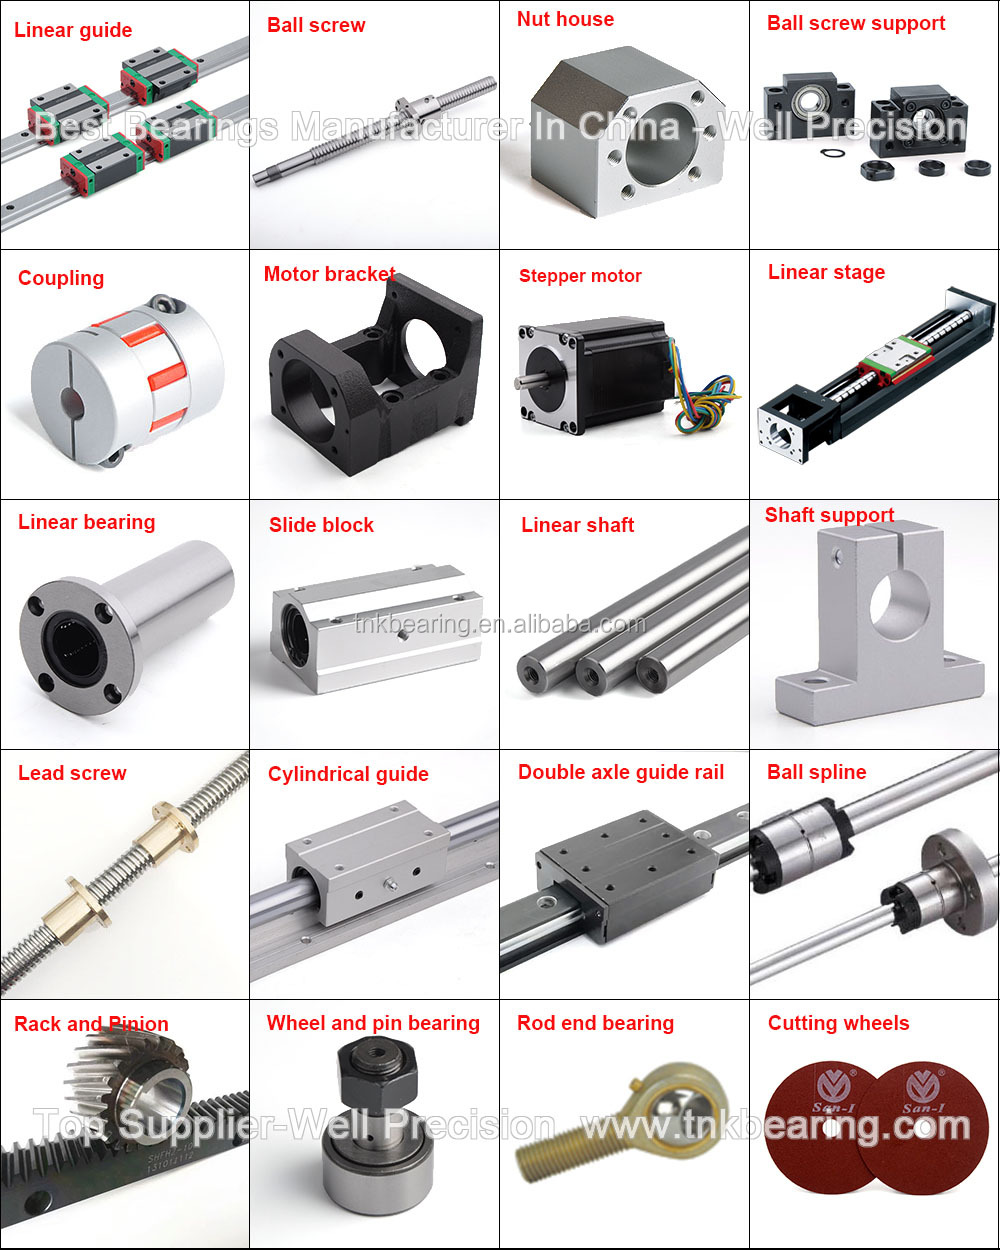 100% Original Taiwan HIWIN linear guide HGR65C,HGW65CC are selling lowest price